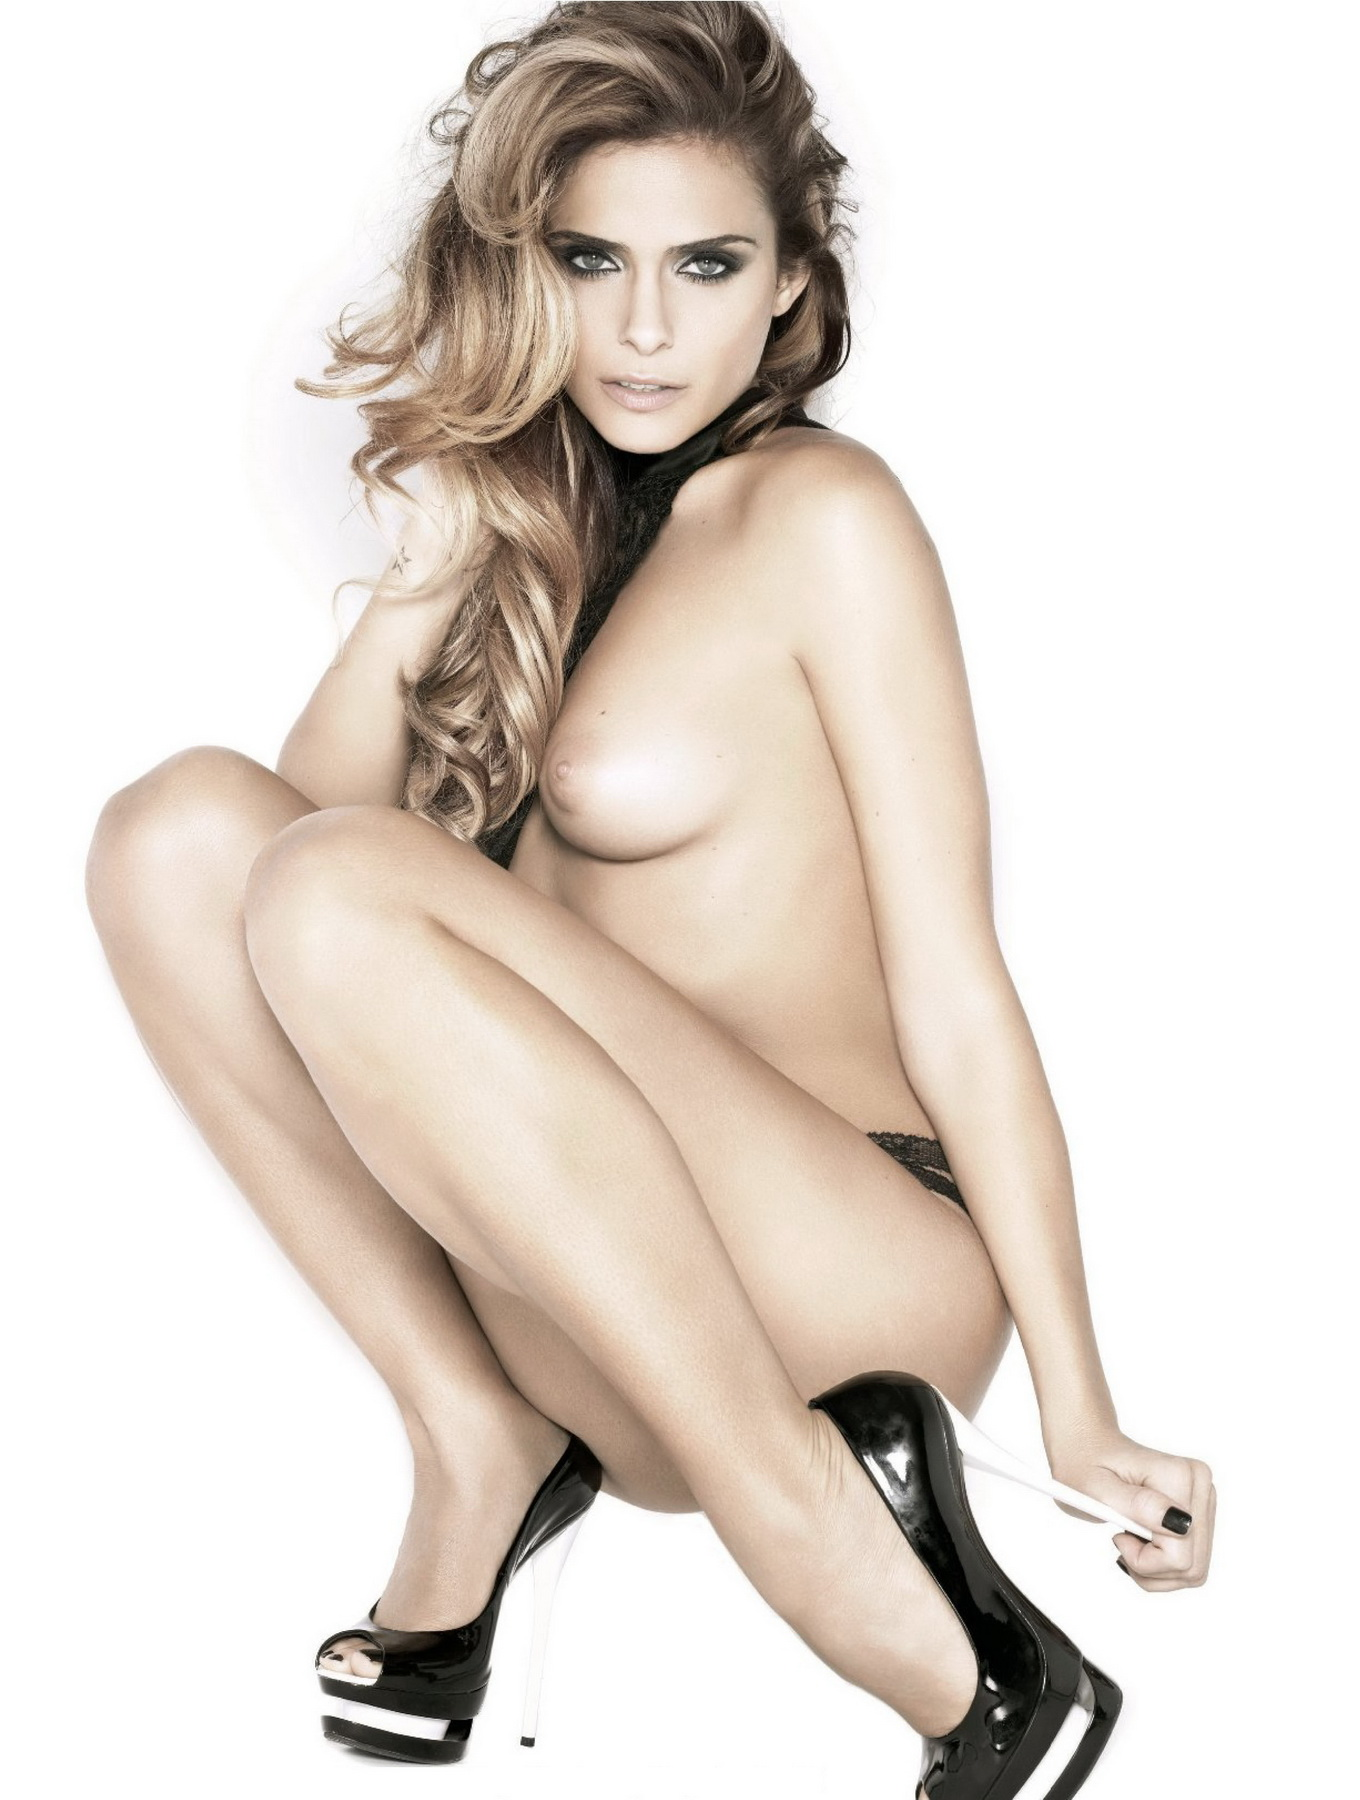 Clara Morgane Posing Nude For December 2010 Issue Of -3600